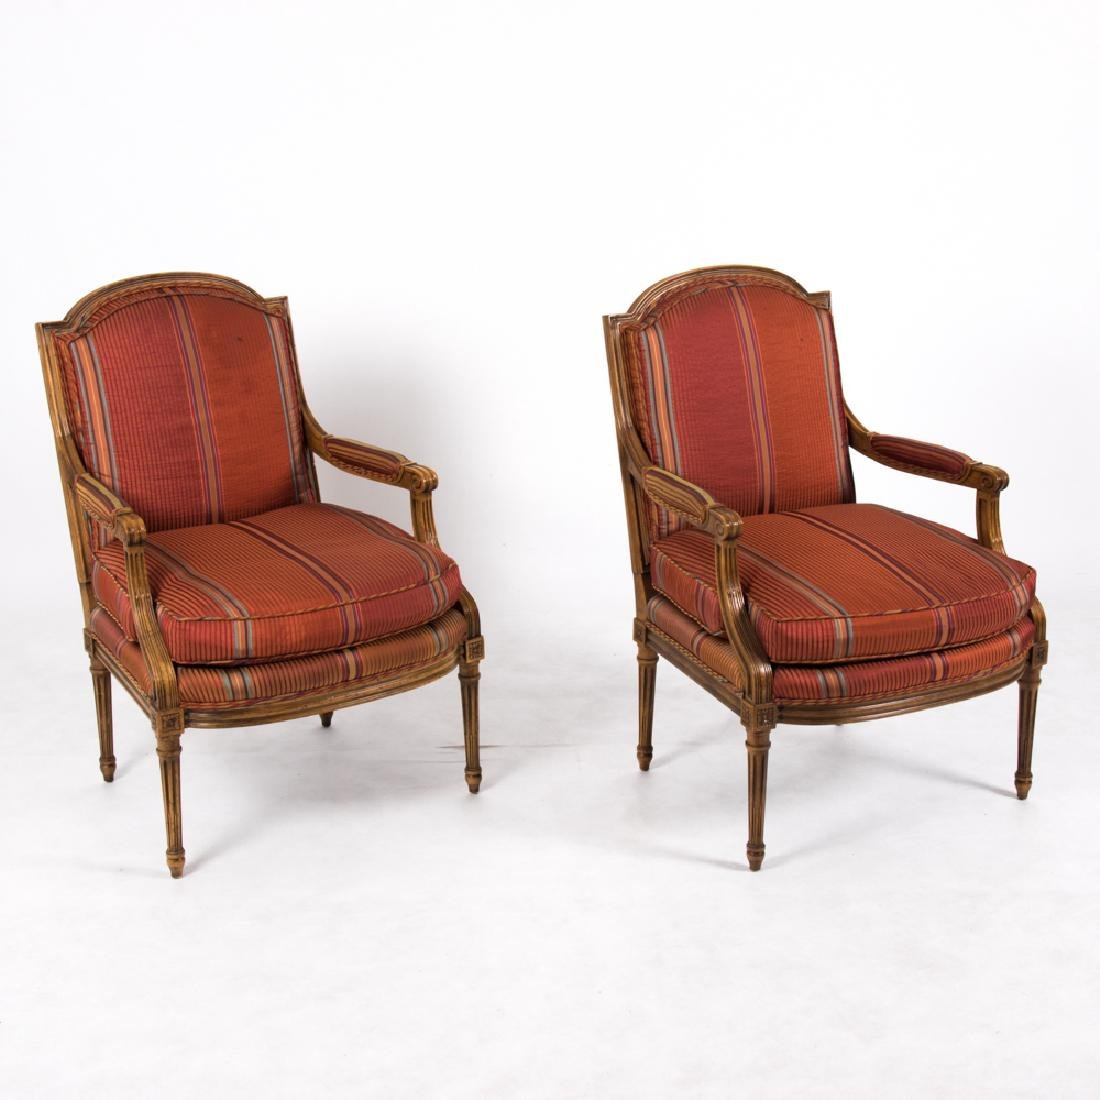 A Pair of Baker Furniture Louis XVI Style Stained